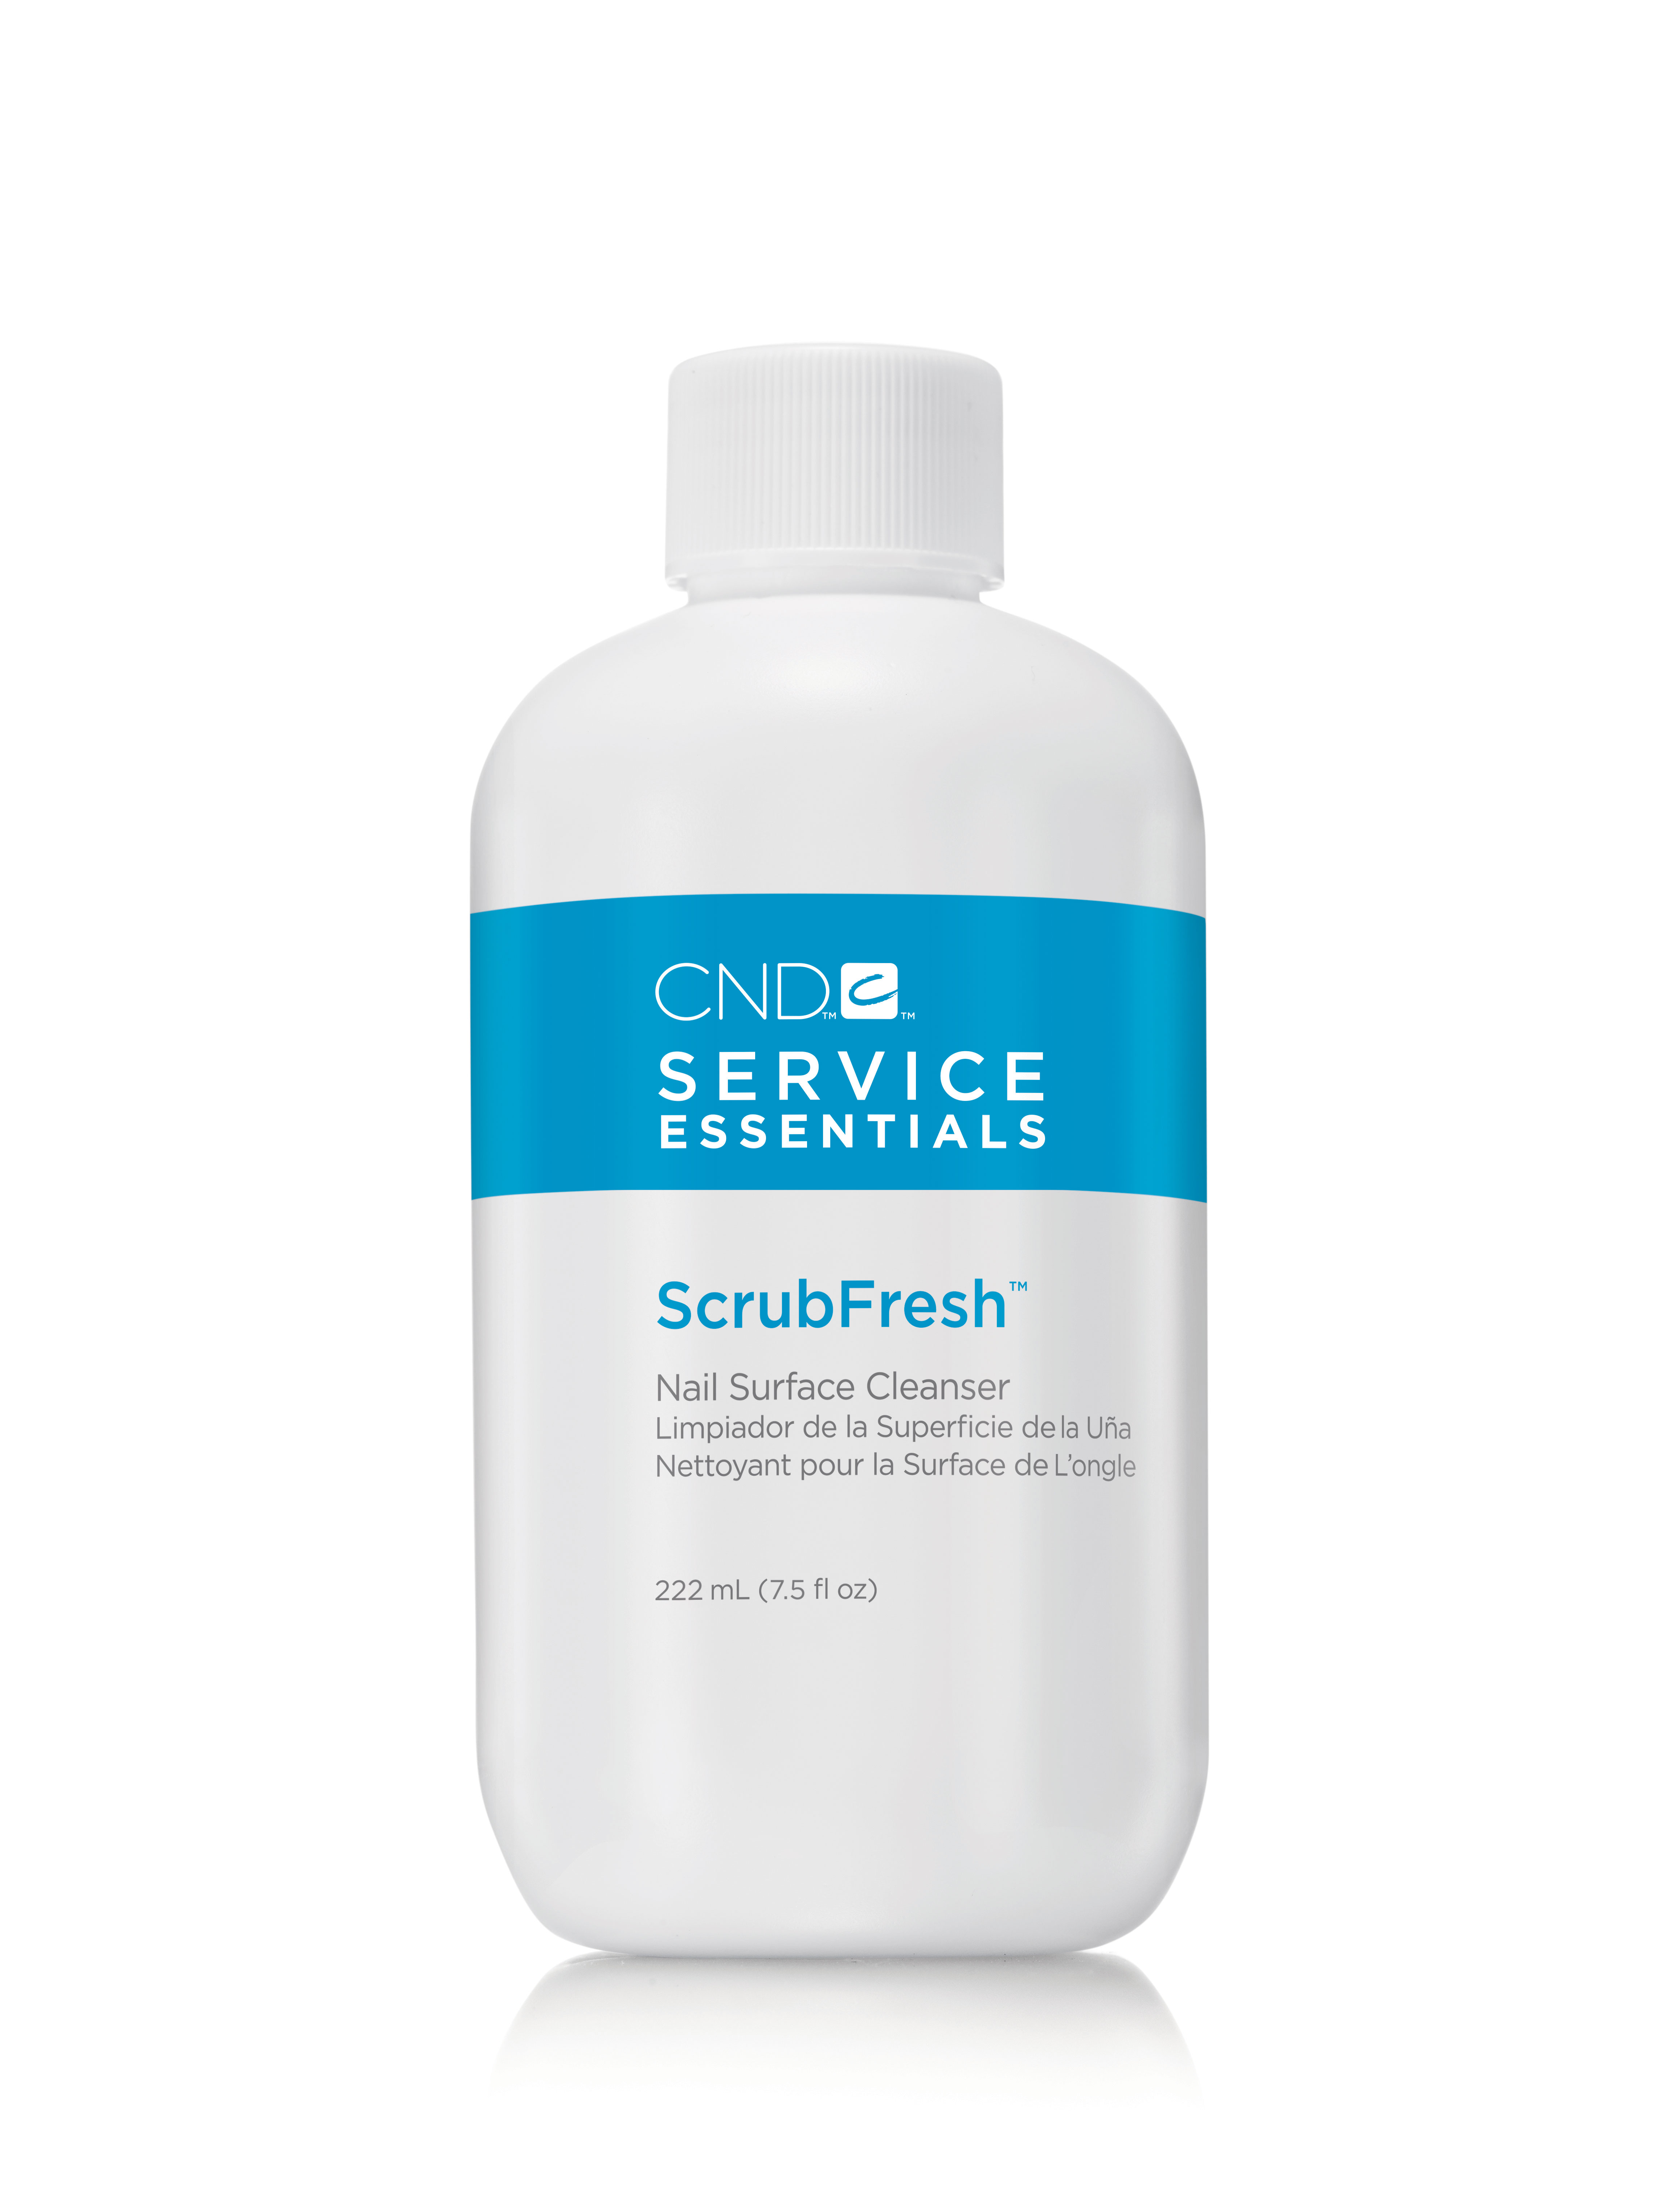 CND Лосьон очищающий для ногтей / Scrub Fresh 222 мл cnd лосьон для рук и тела сорго и мандарин cnd scentsations lotion tangerine and lemongrass 14117 245 мл